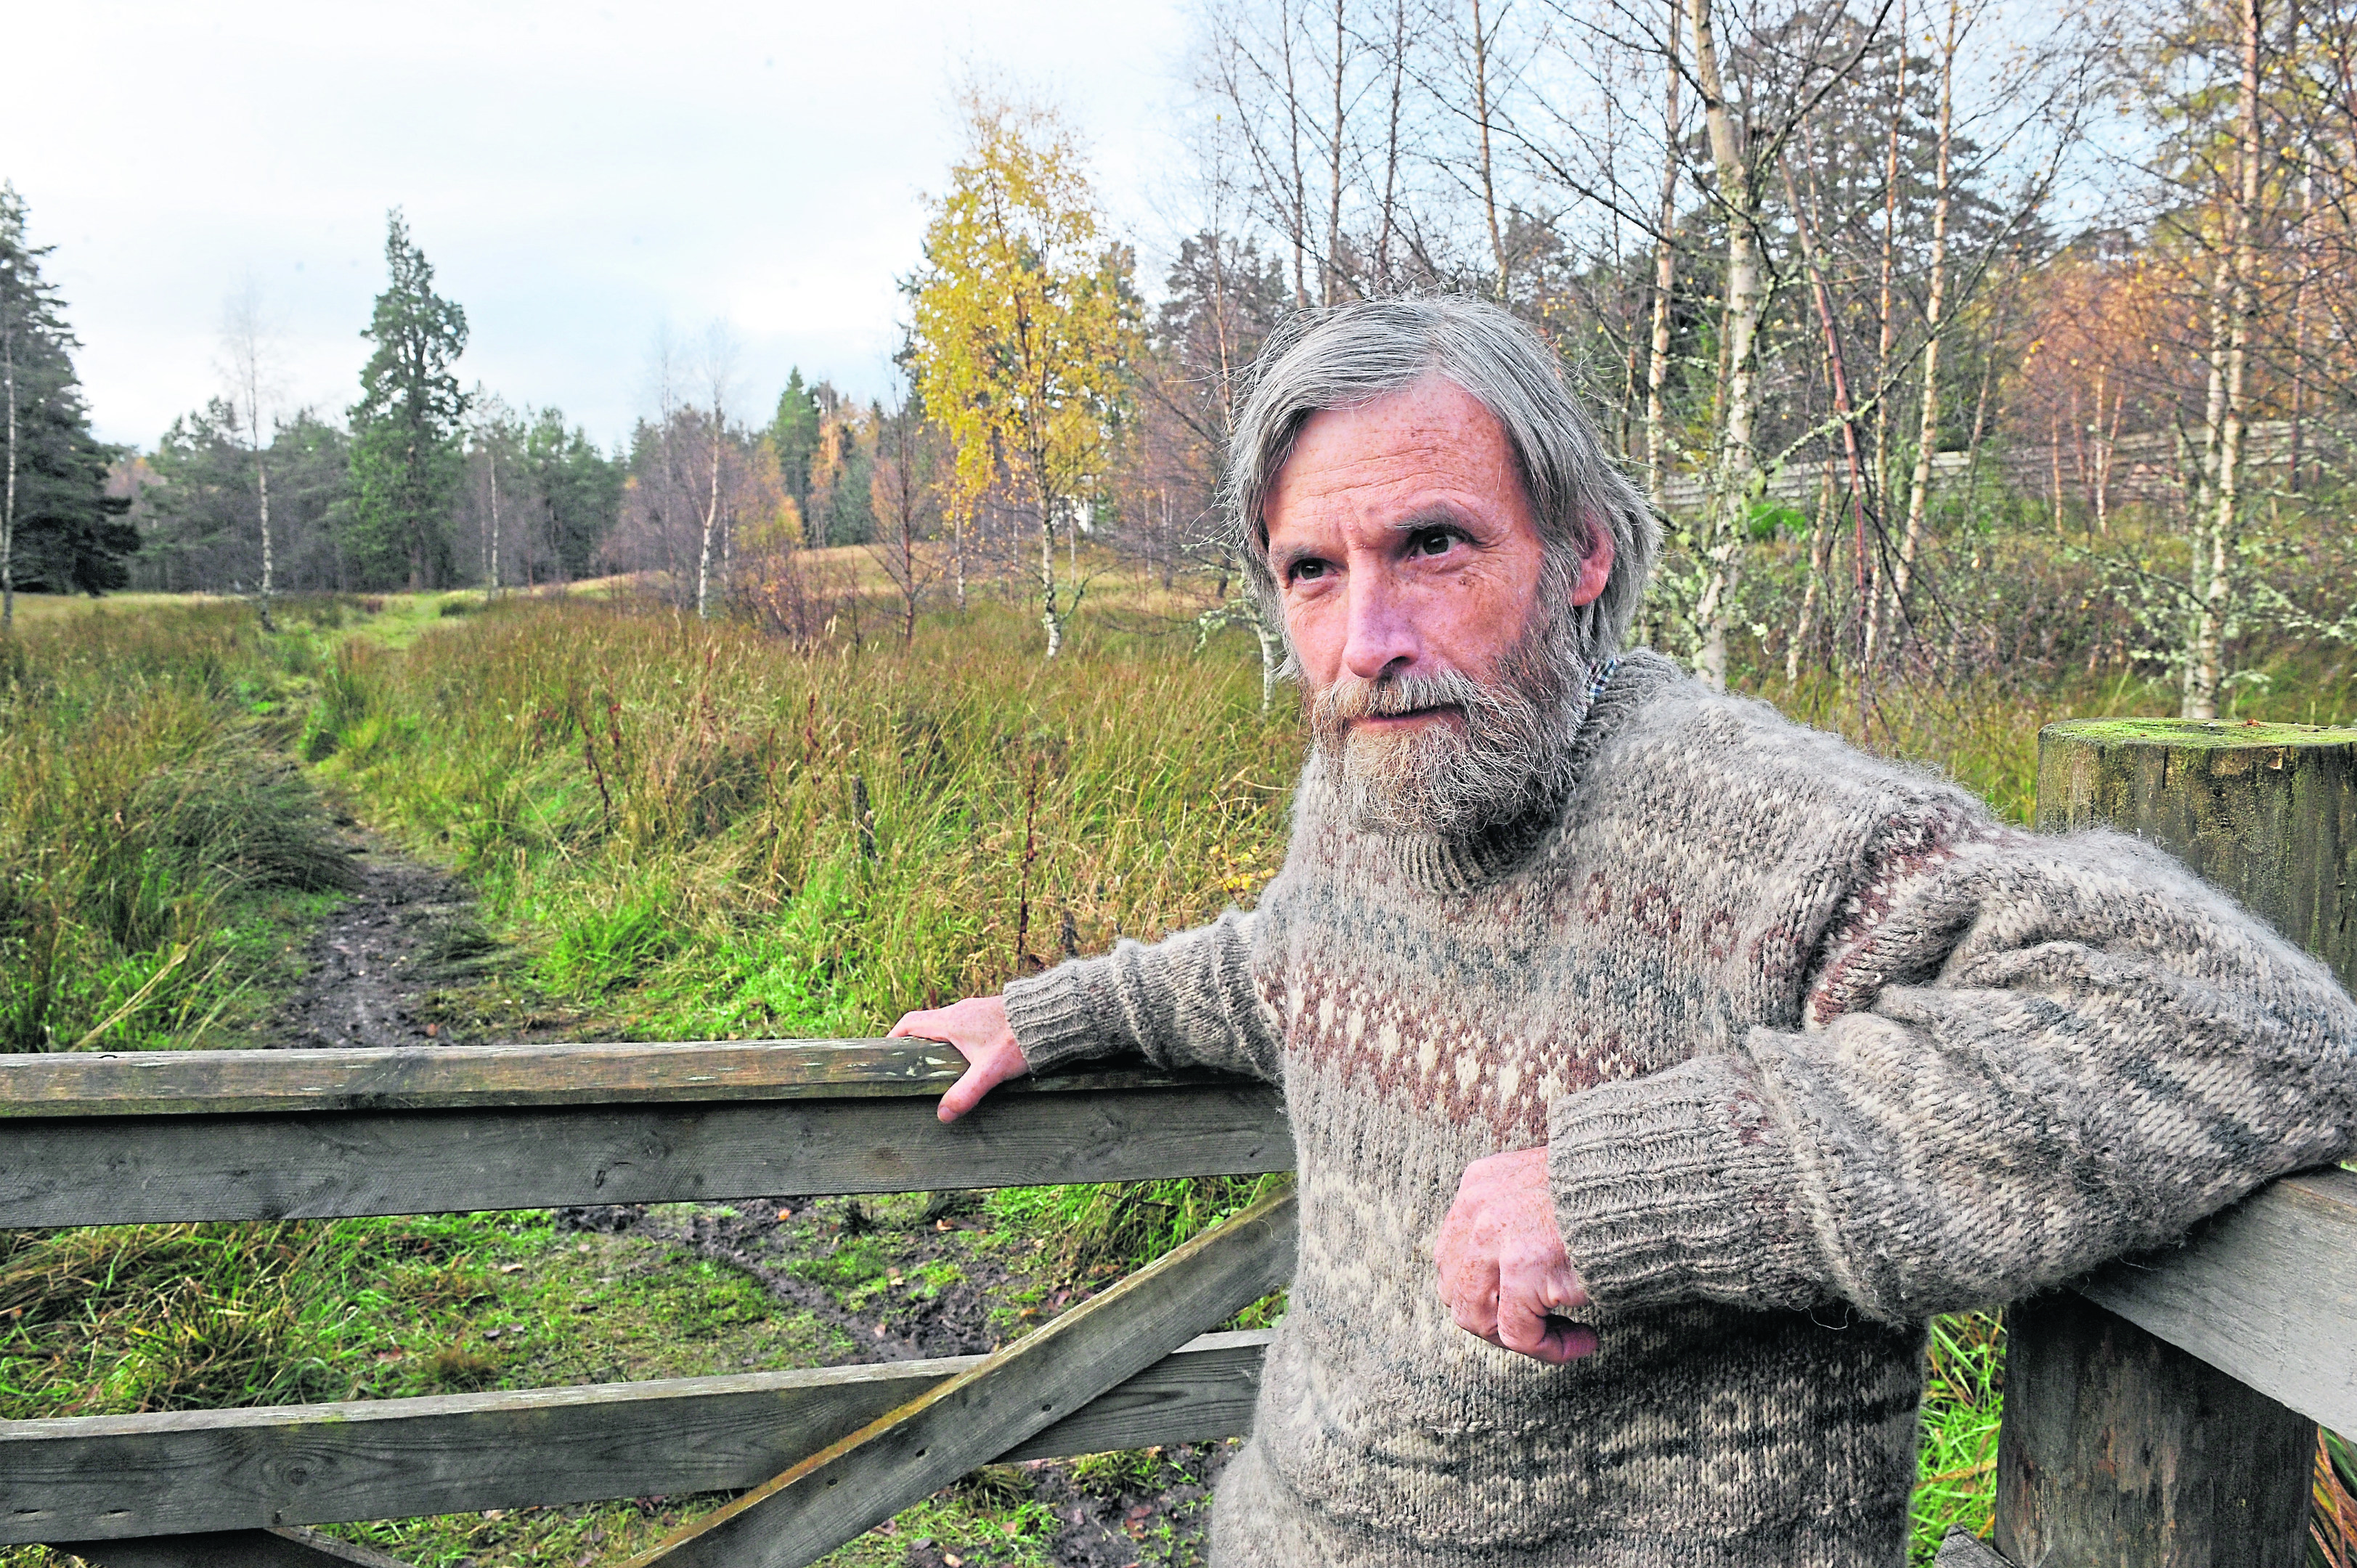 Dr Gus Jones of the Badenoch and Strathspey Conservation Group (BSCG) welcomed the decision to defer